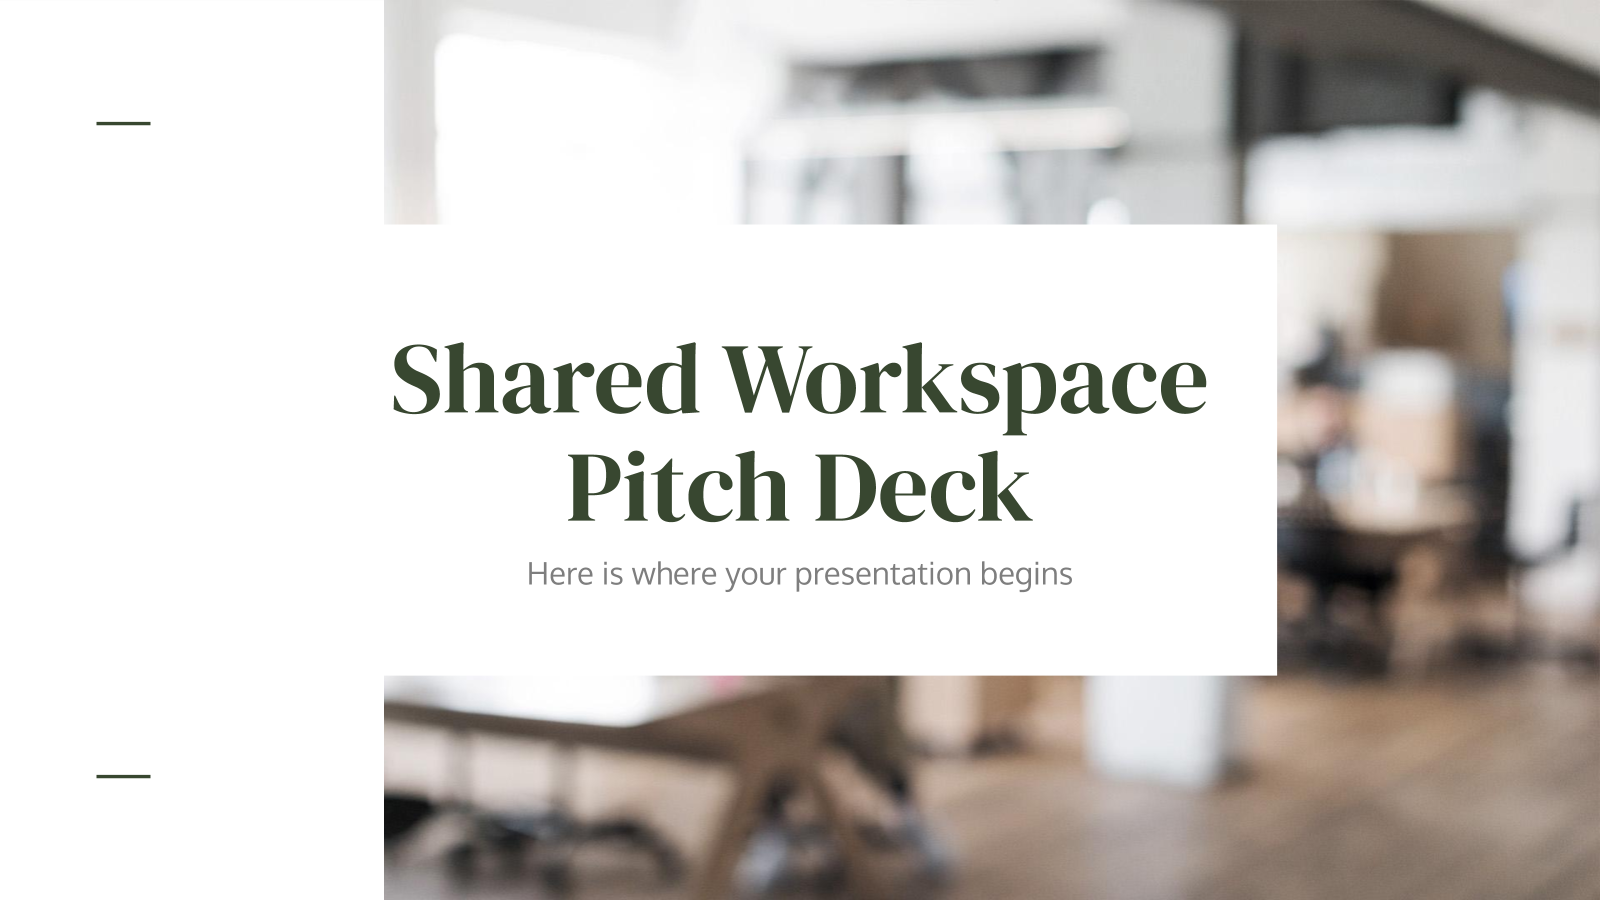 Shared Workspace Pitch Deck presentation template